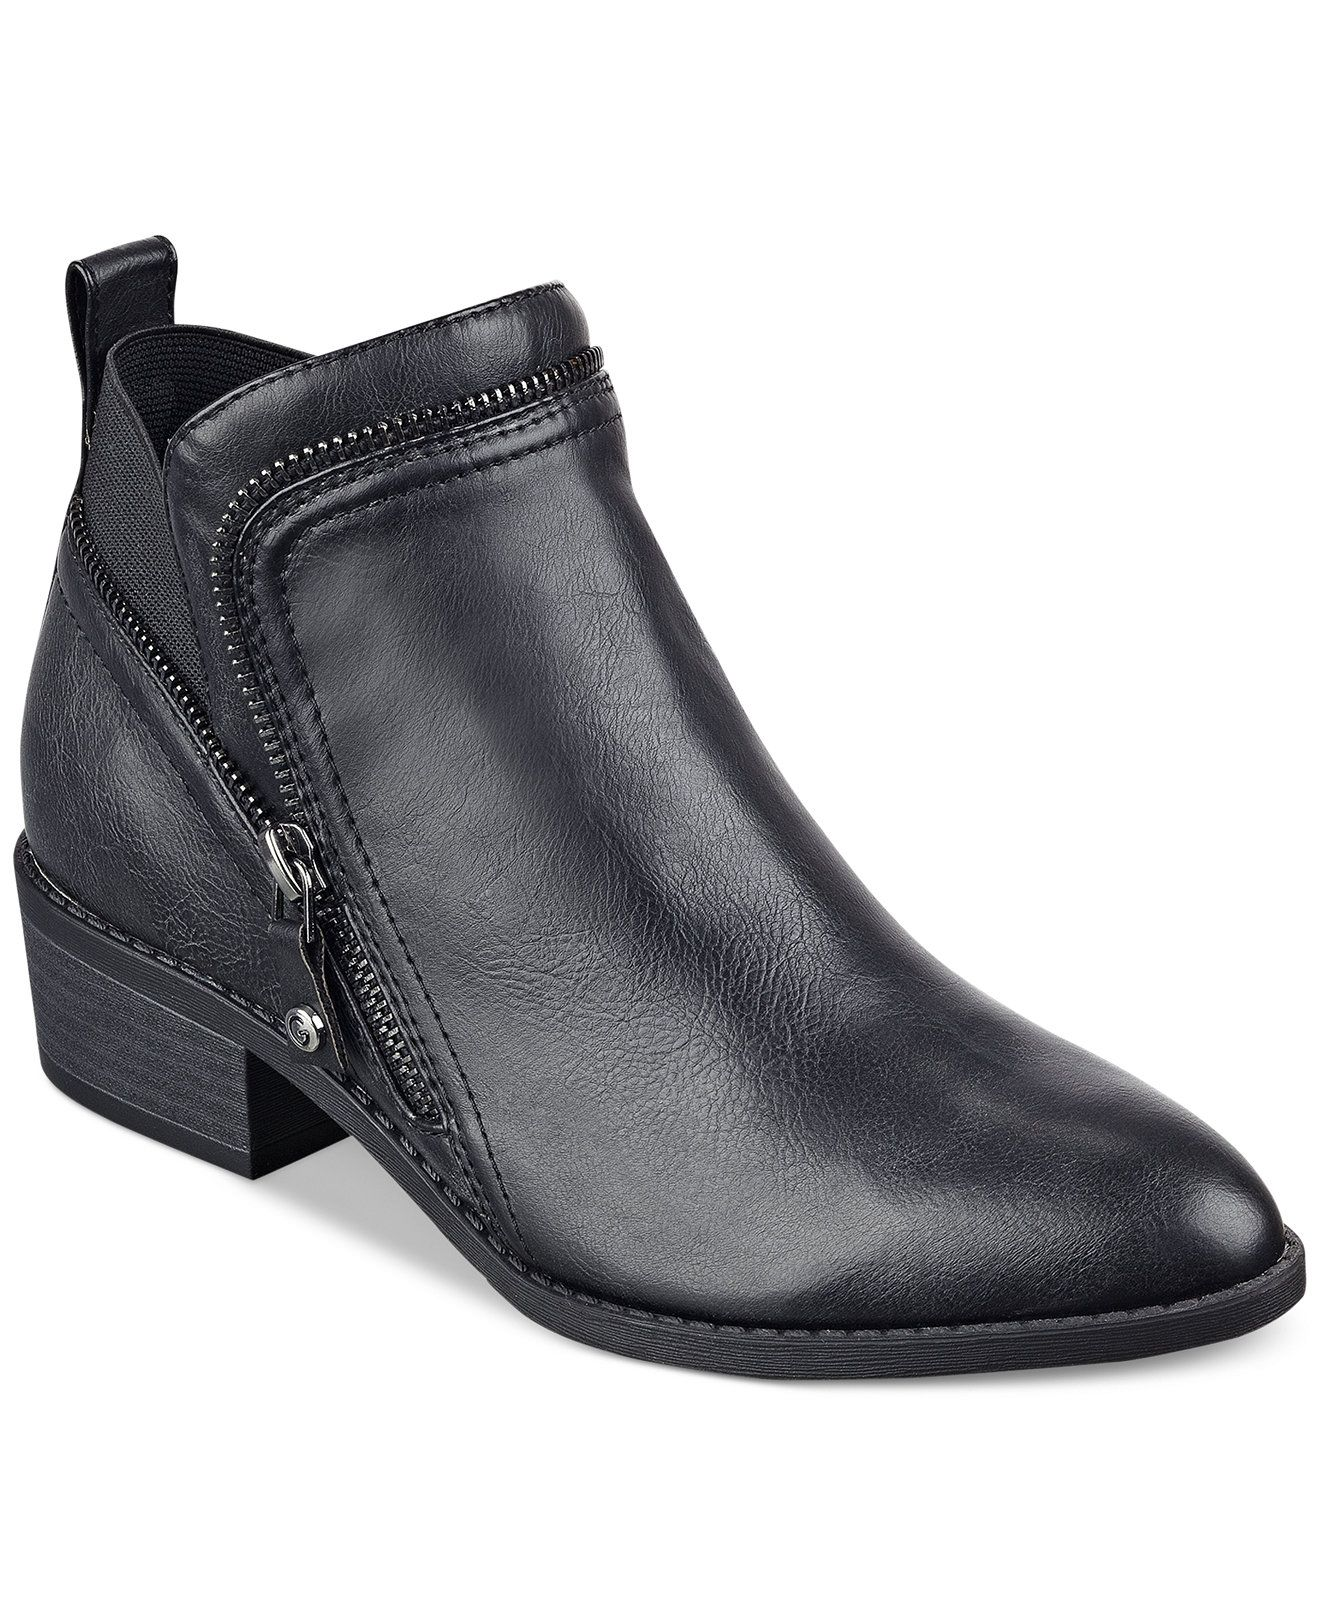 OWNED G by GUESS Women's Rossy Ankle Booties - Shoes - Macy's